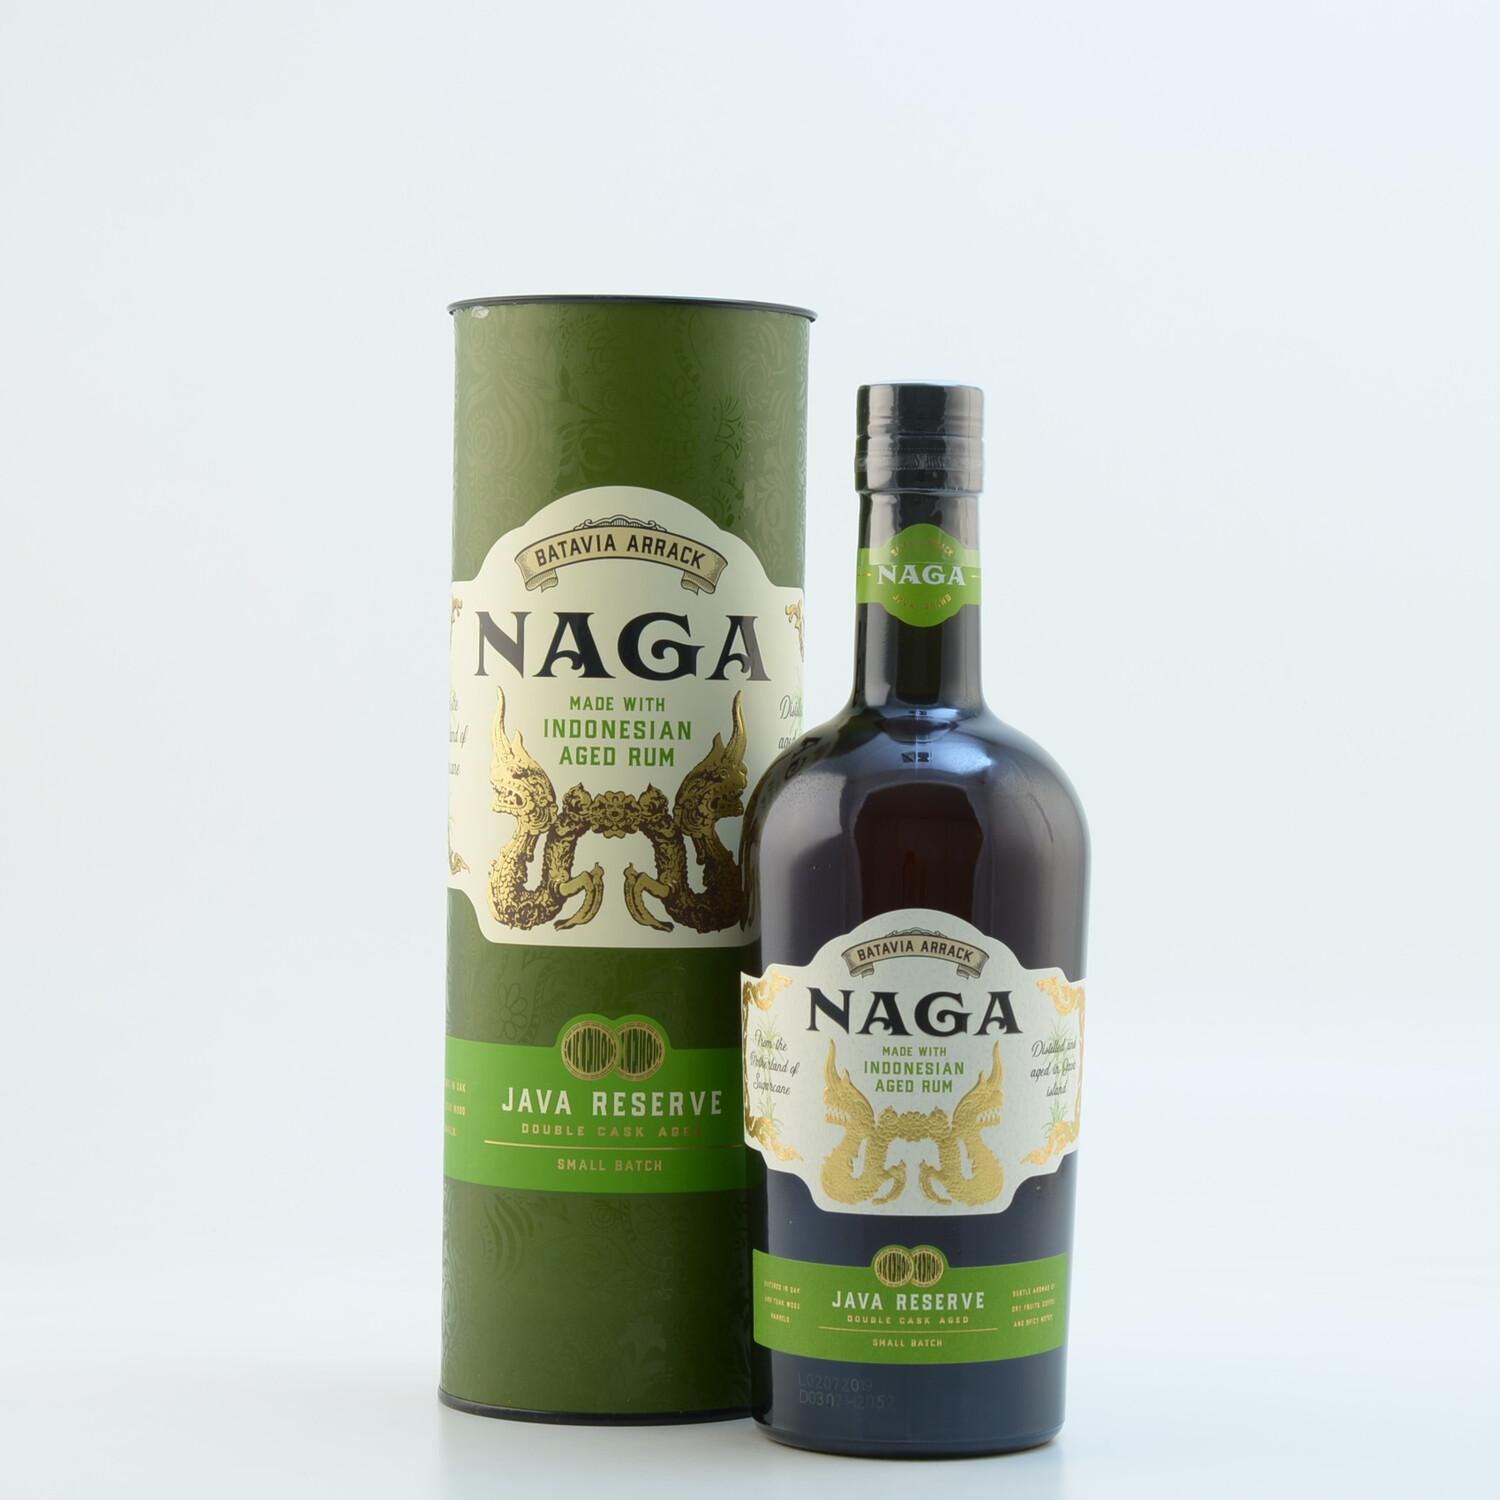 Naga Double Cask Aged Indonesian Rum 38% 0,7l, 32,50 €